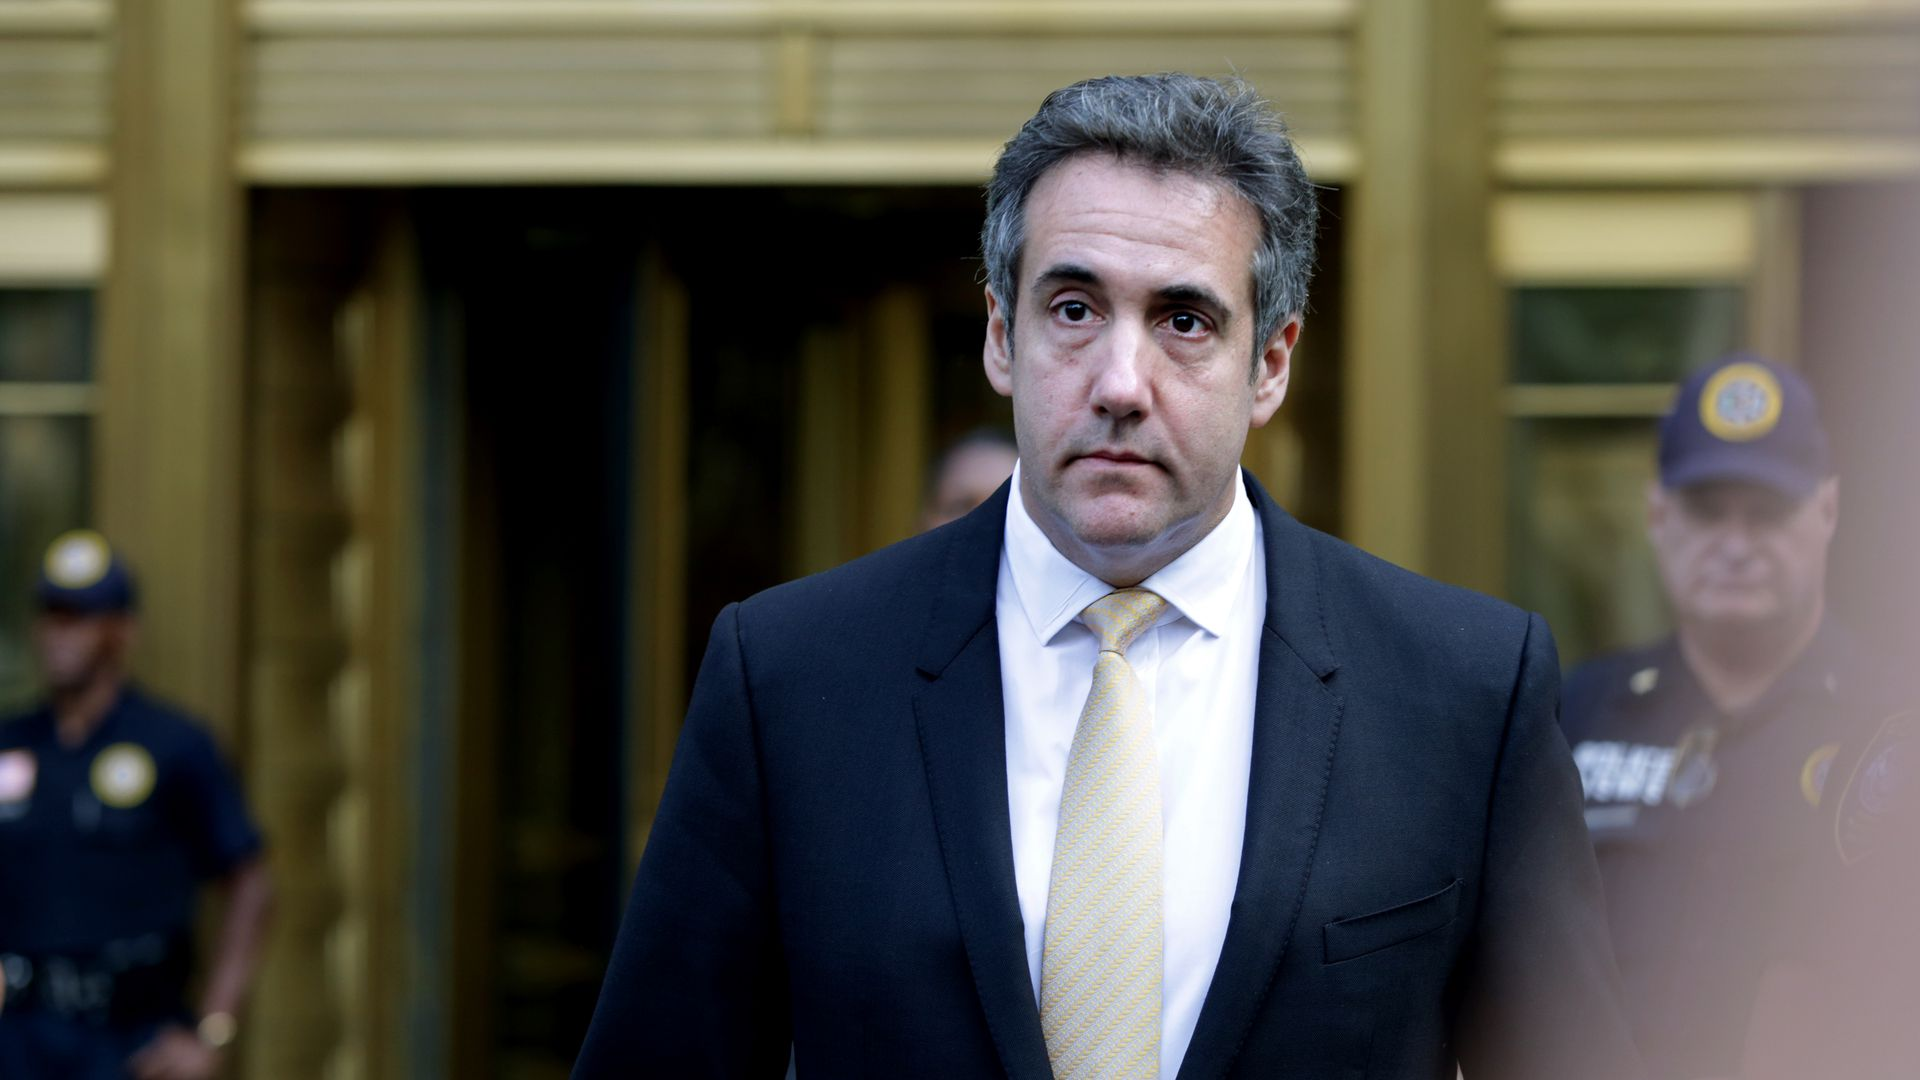 Michael Cohen, former lawyer to President Donald Trump. Photo: Yana Paskova/Getty Images